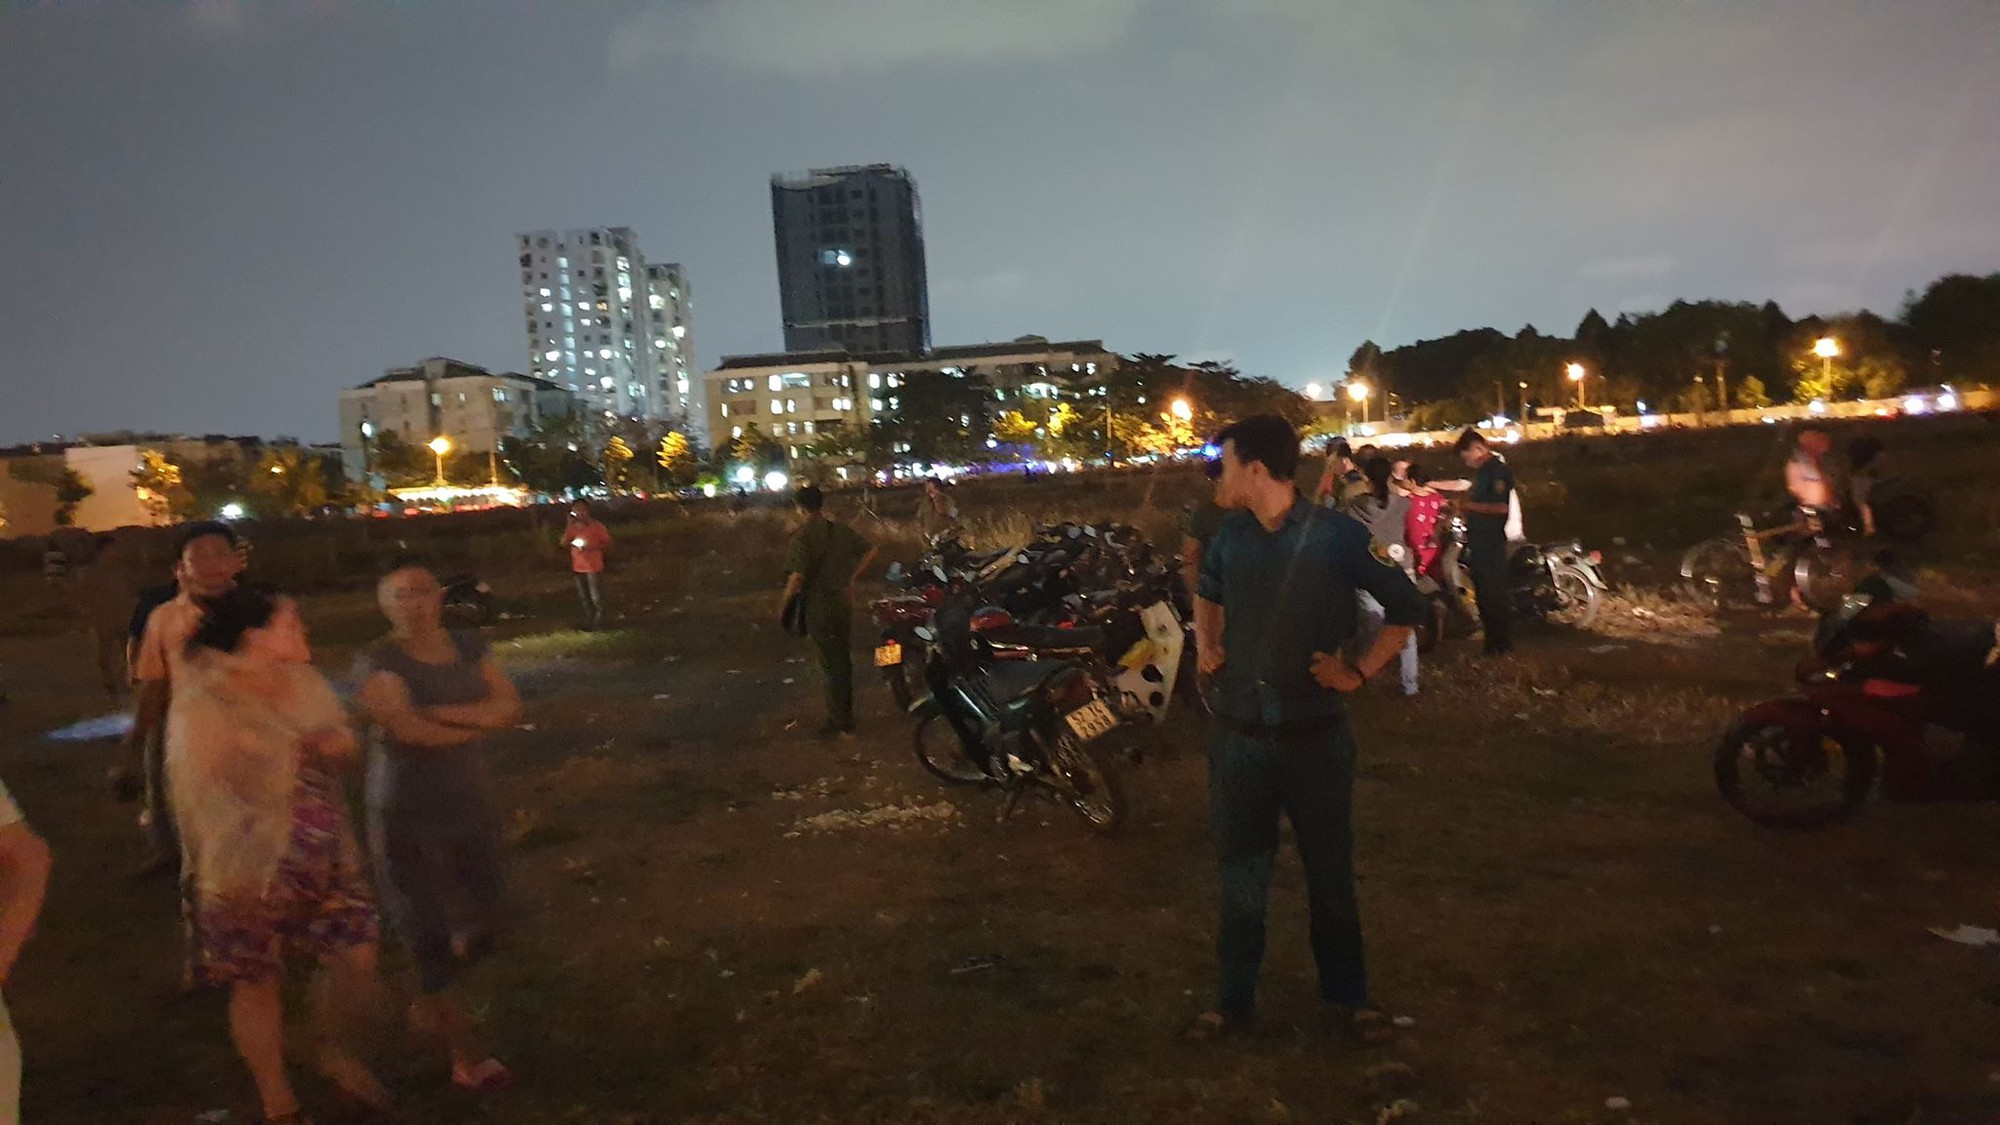 The panic discovered a couple of men and women burning like torches after going to an empty land talking in Saigon - Photo 4.